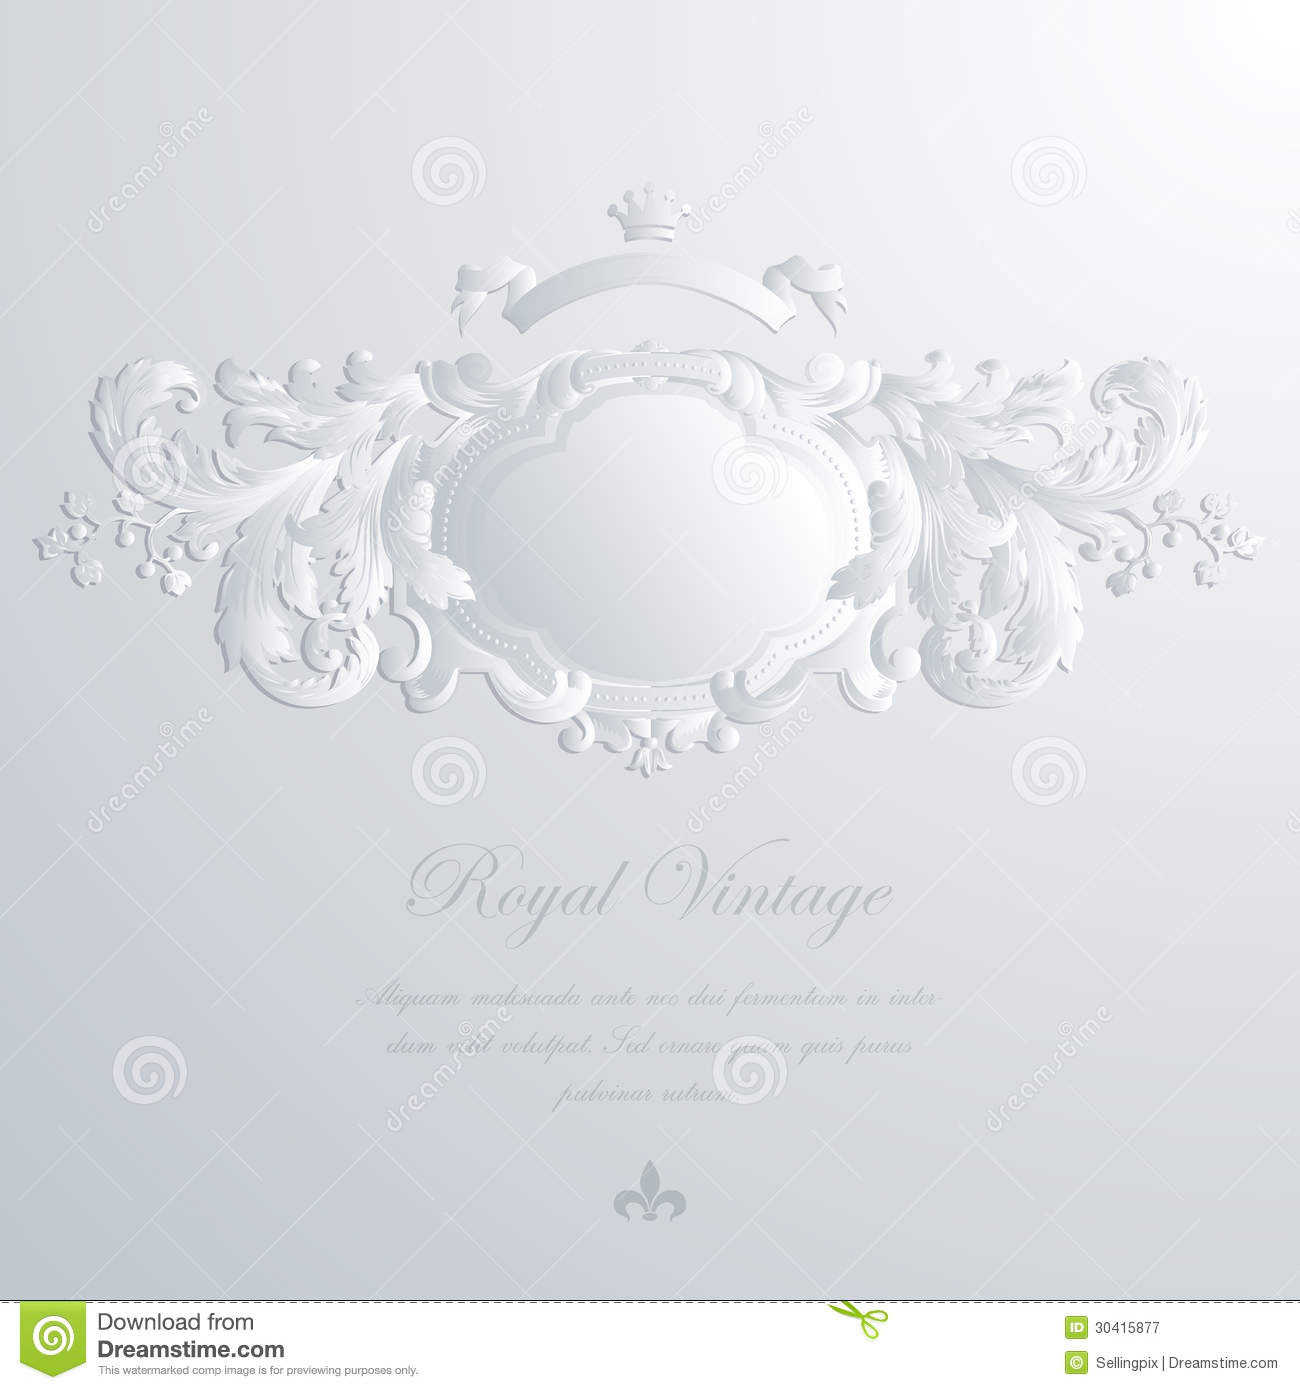 Vintage Elegant Greeting Card Amp Wedding Invitation Royalty